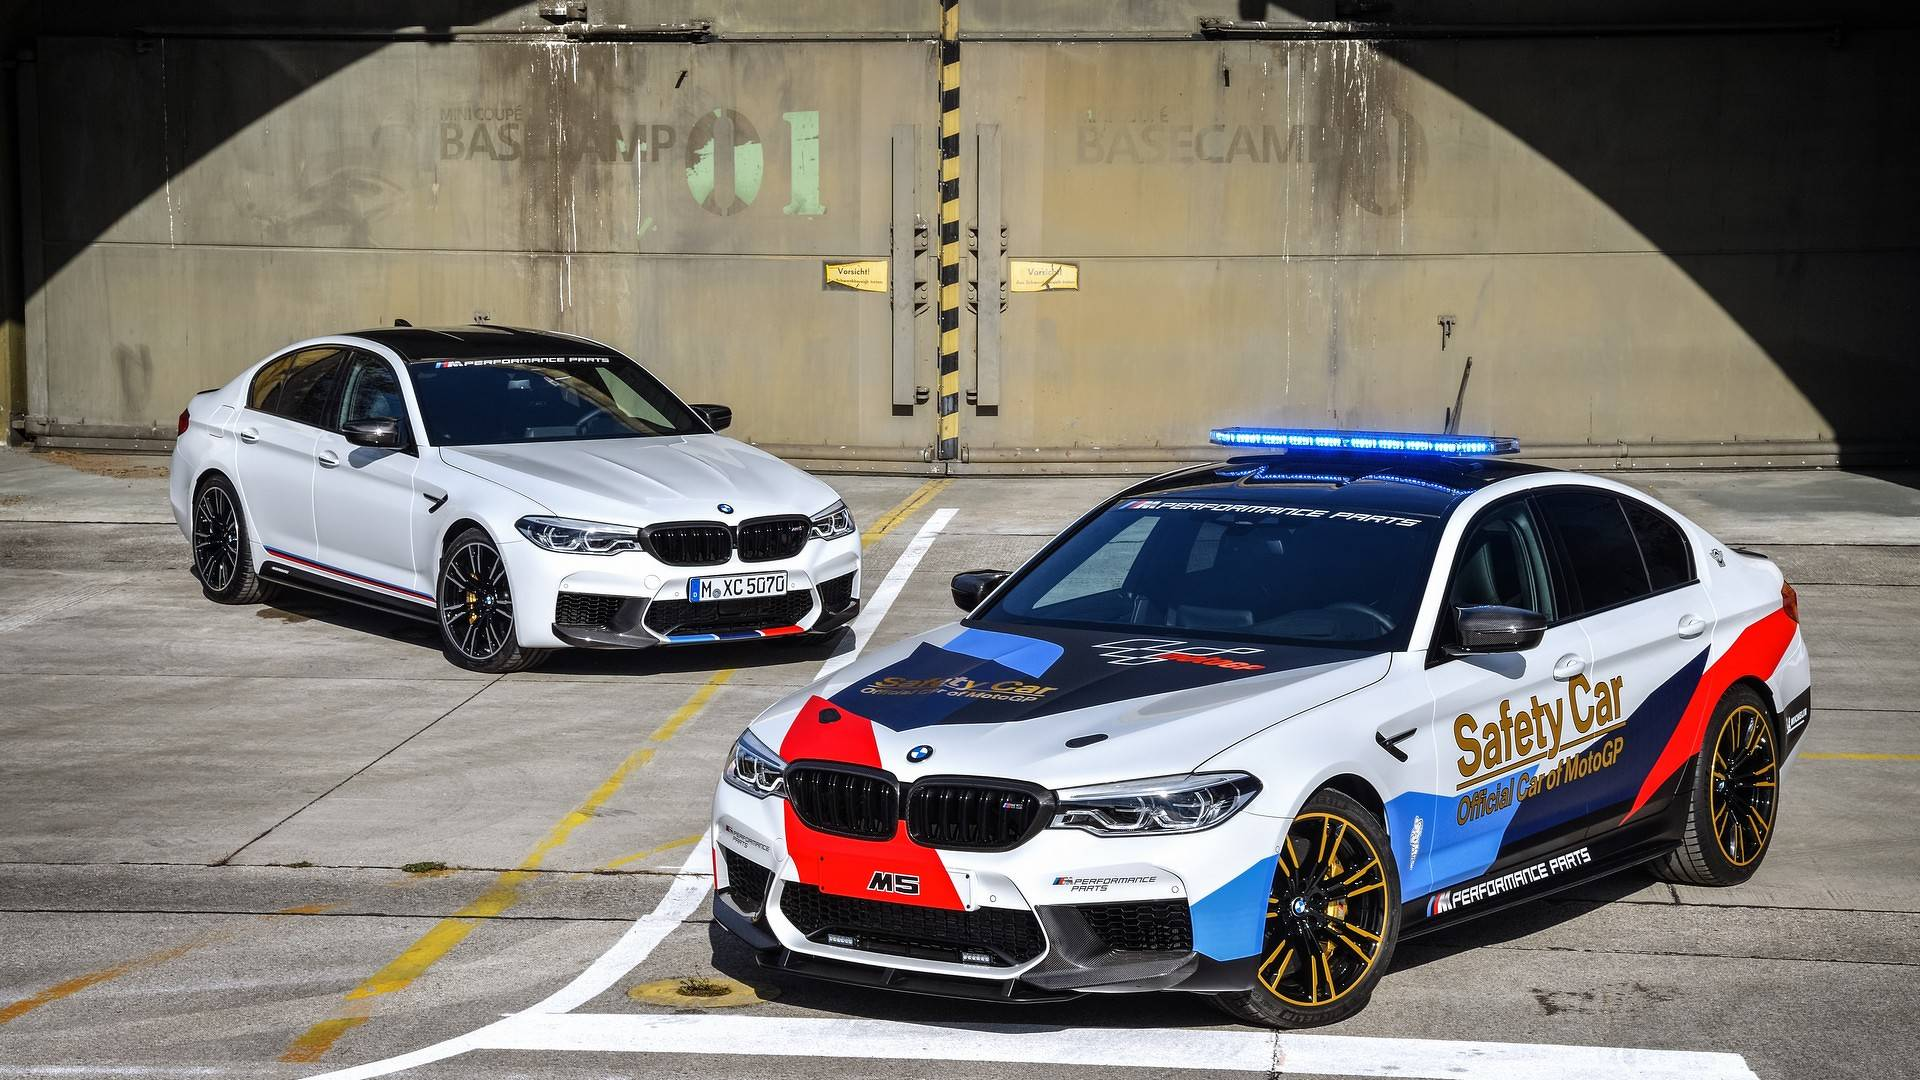 Prix M2 Le Mans Bmw F90 M5 Chosen As 2018 Motogp Safety Car Previews M5 M